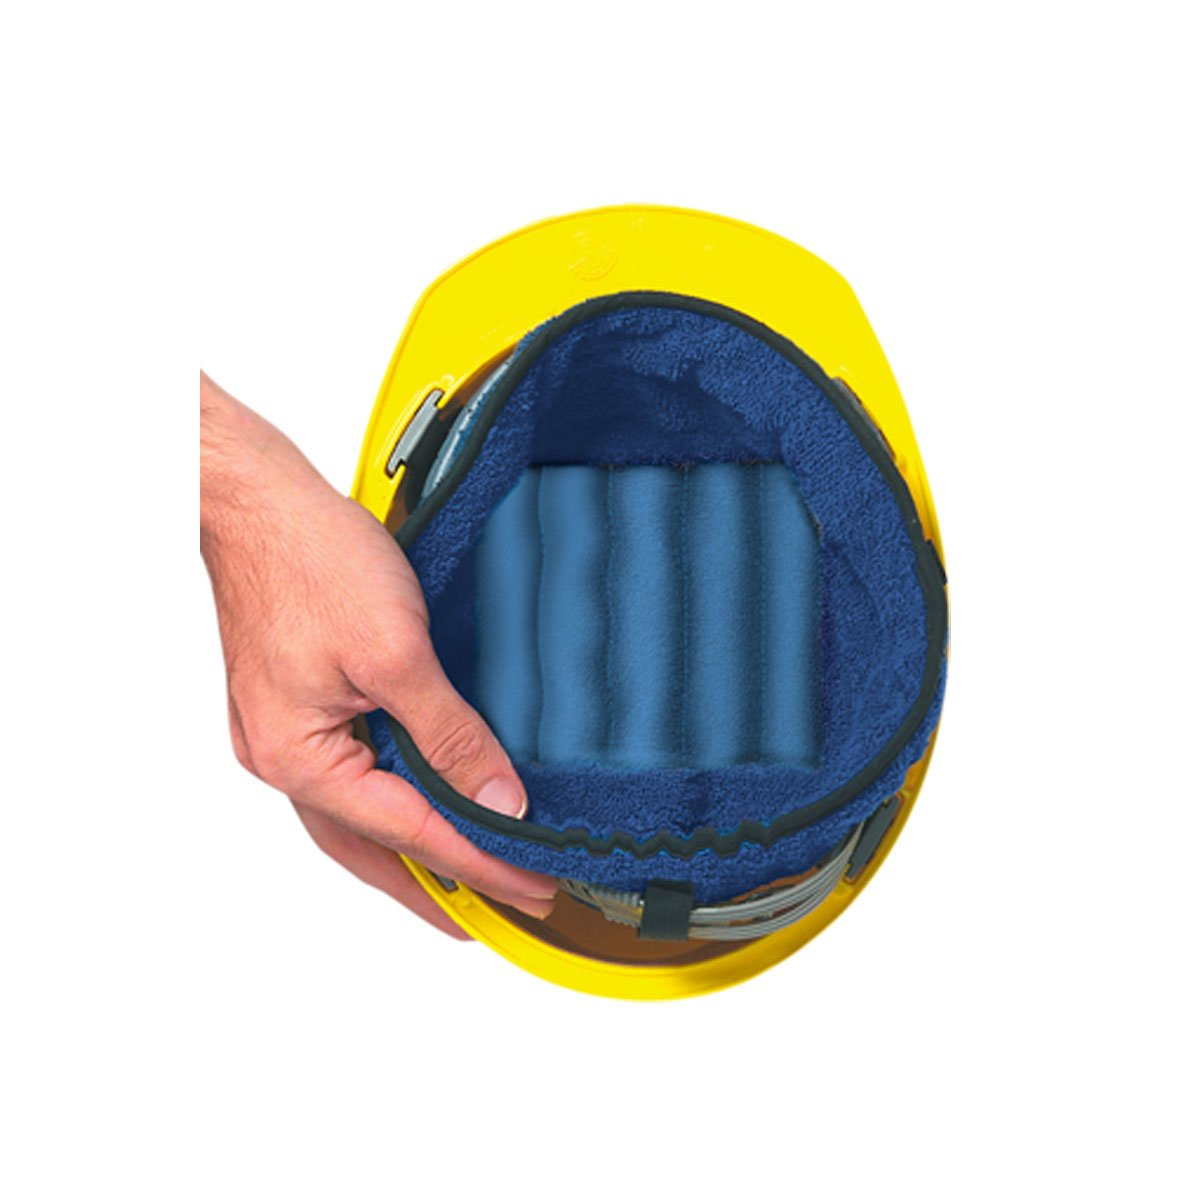 1EA-MiraCool Navy Blue Terry Hard Hat Liner for suspension, One Size, #919 - BLUE by Occunomix (Image #1)